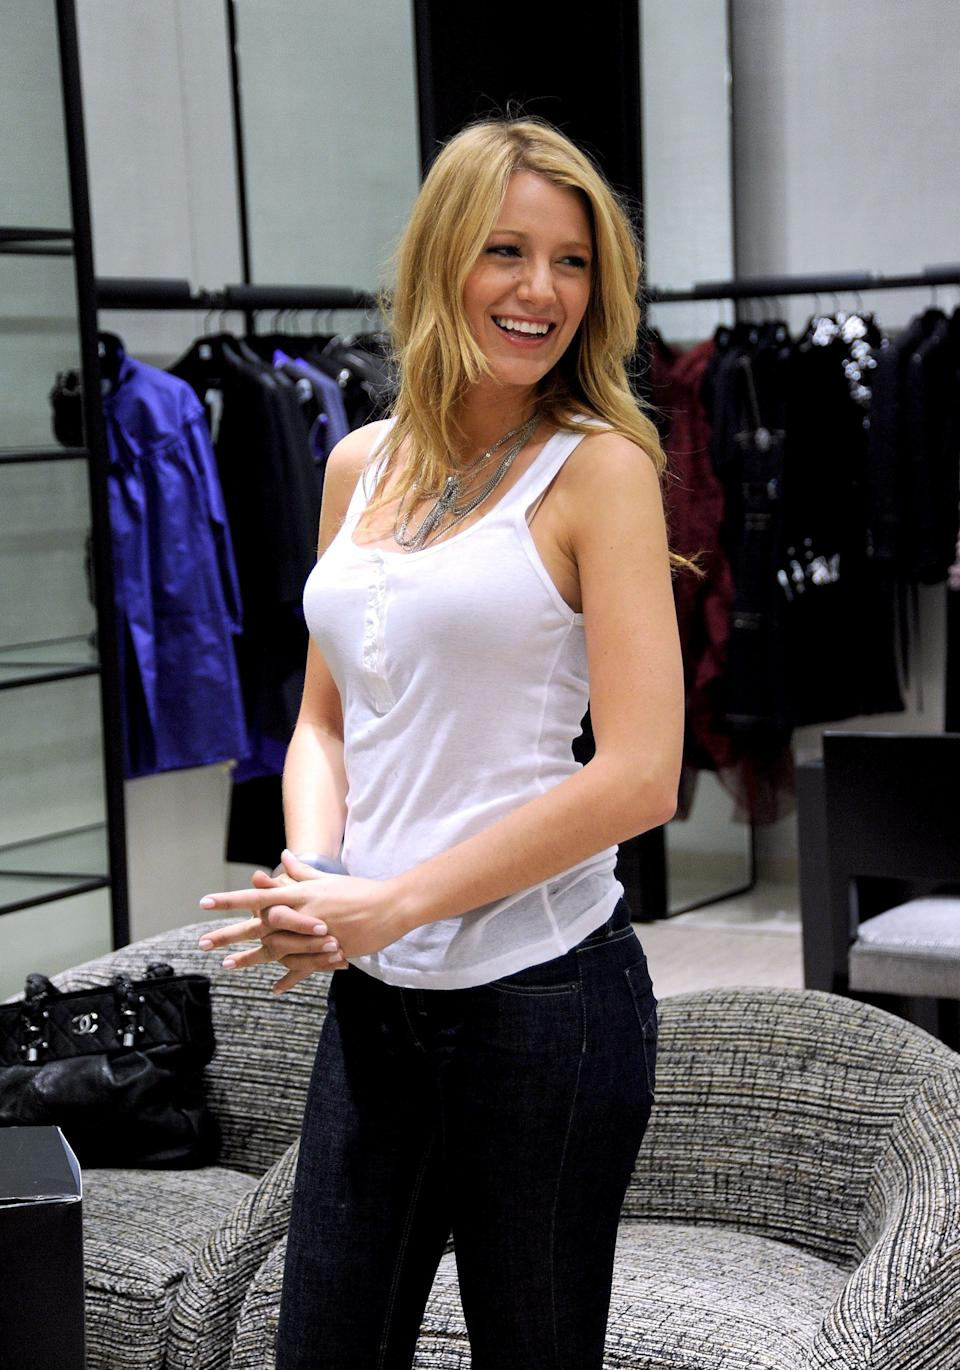 (EXCLUSIVE, Premium Rates Apply) NEW YORK - SEPTEMBER 02:  Actress Blake Lively shops at the Chanel Boutique at Saks Fifth Avenue on September 2, 2008 in New York City.  (Photo by James Devaney/WireImage)